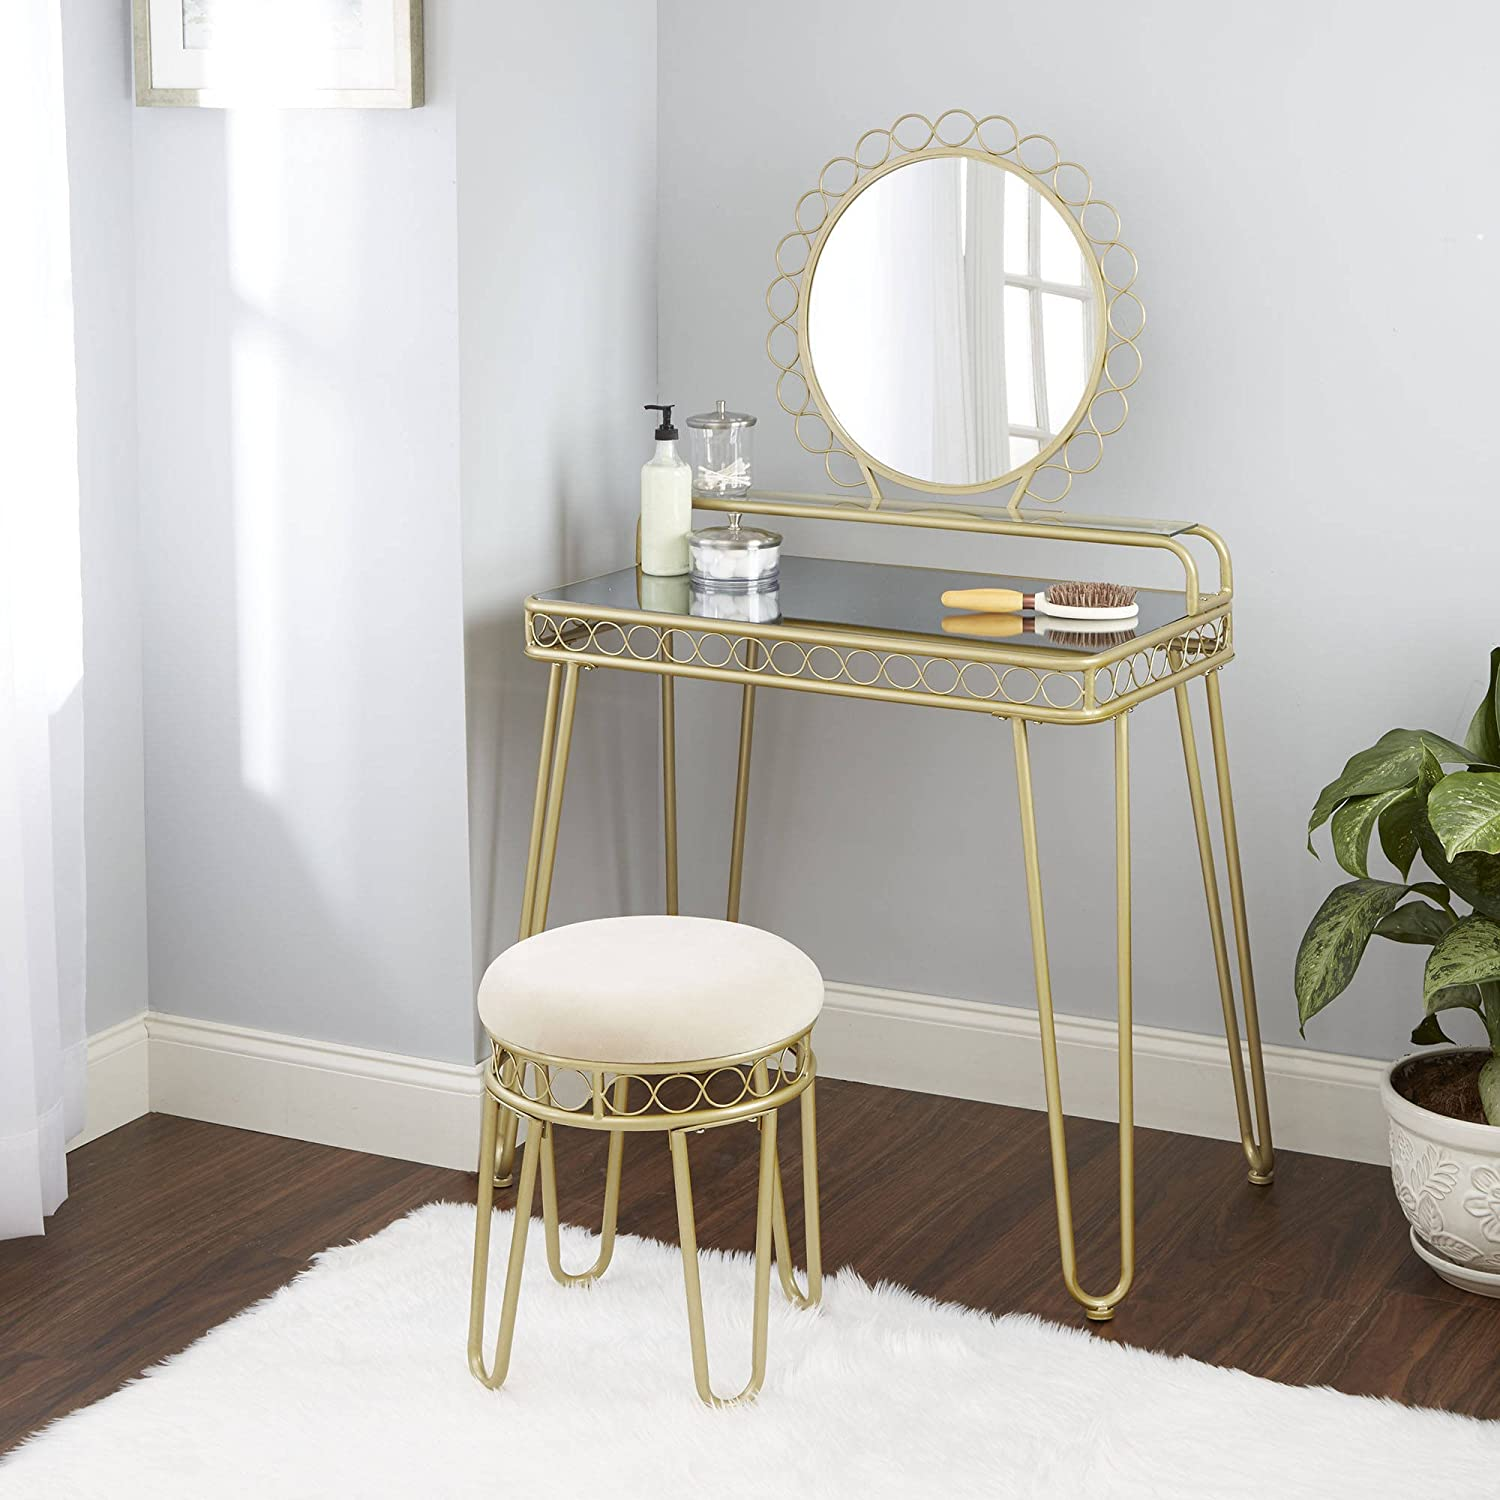 Better Homes and Gardens Mirabella Vanity & Stool, Gold